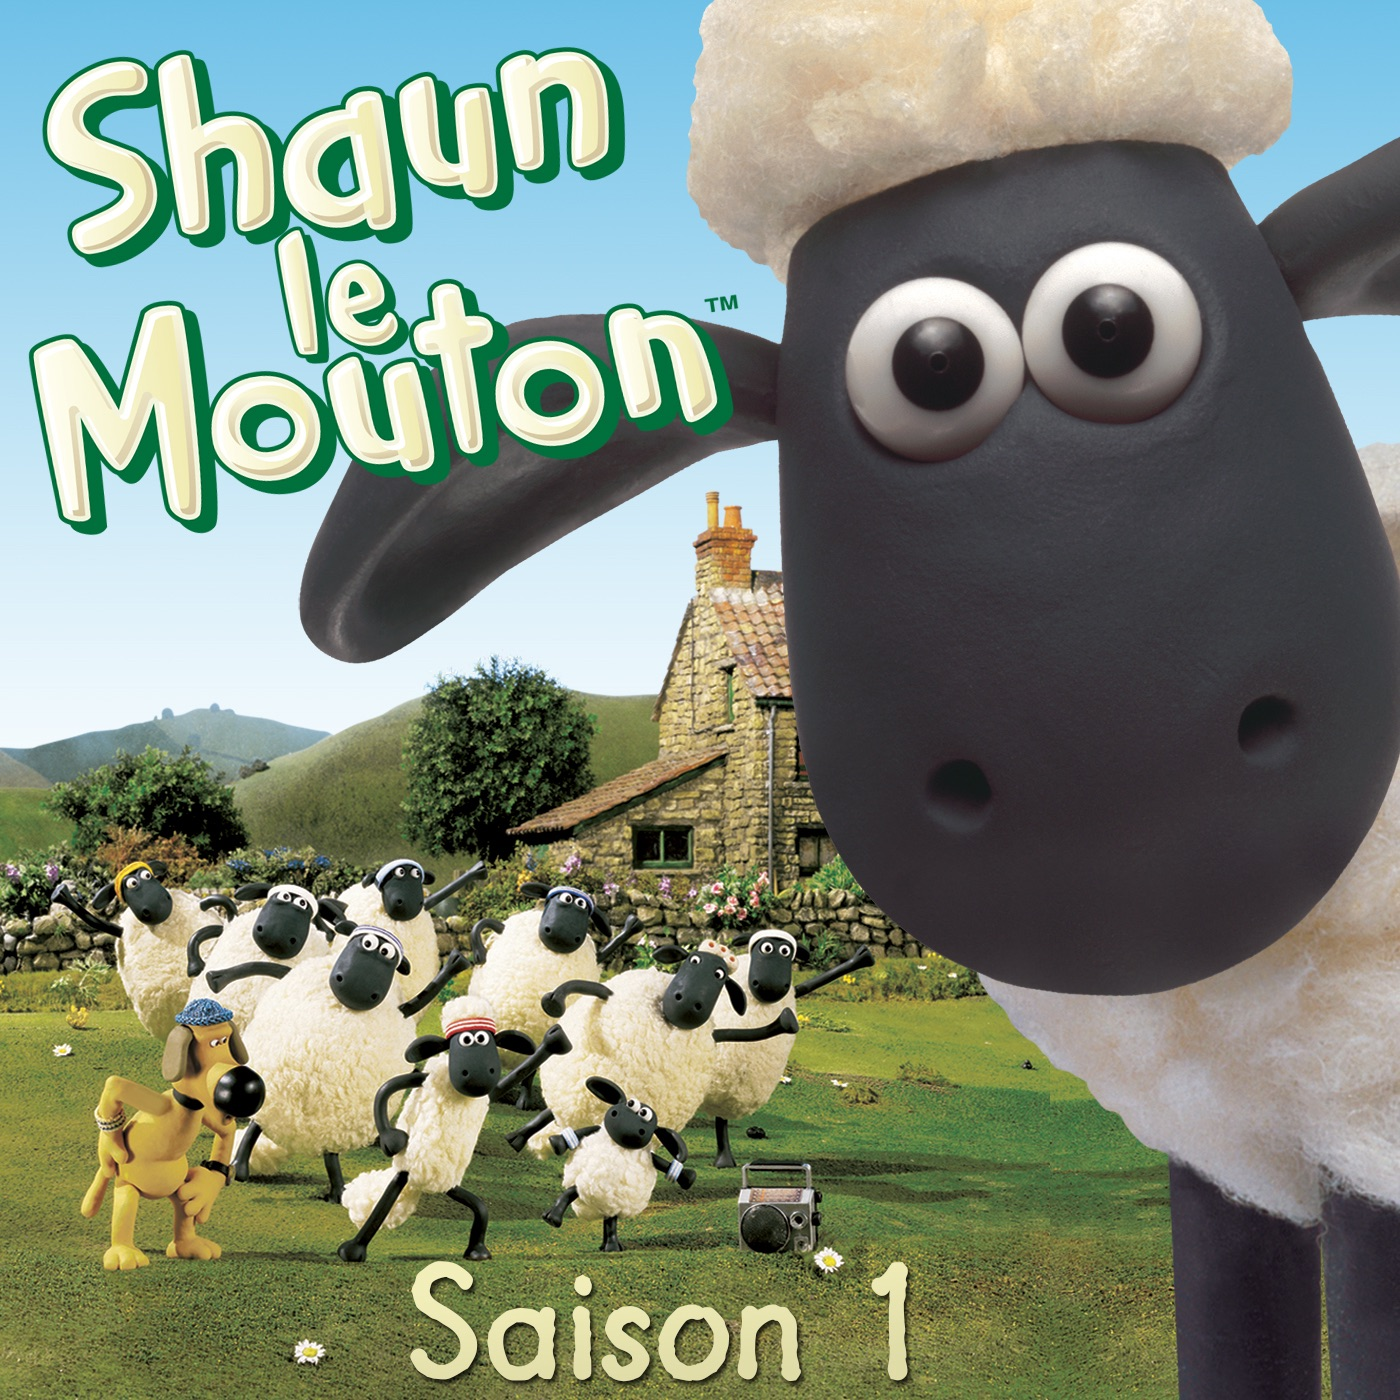 shaun le mouton saison 1 sur itunes. Black Bedroom Furniture Sets. Home Design Ideas